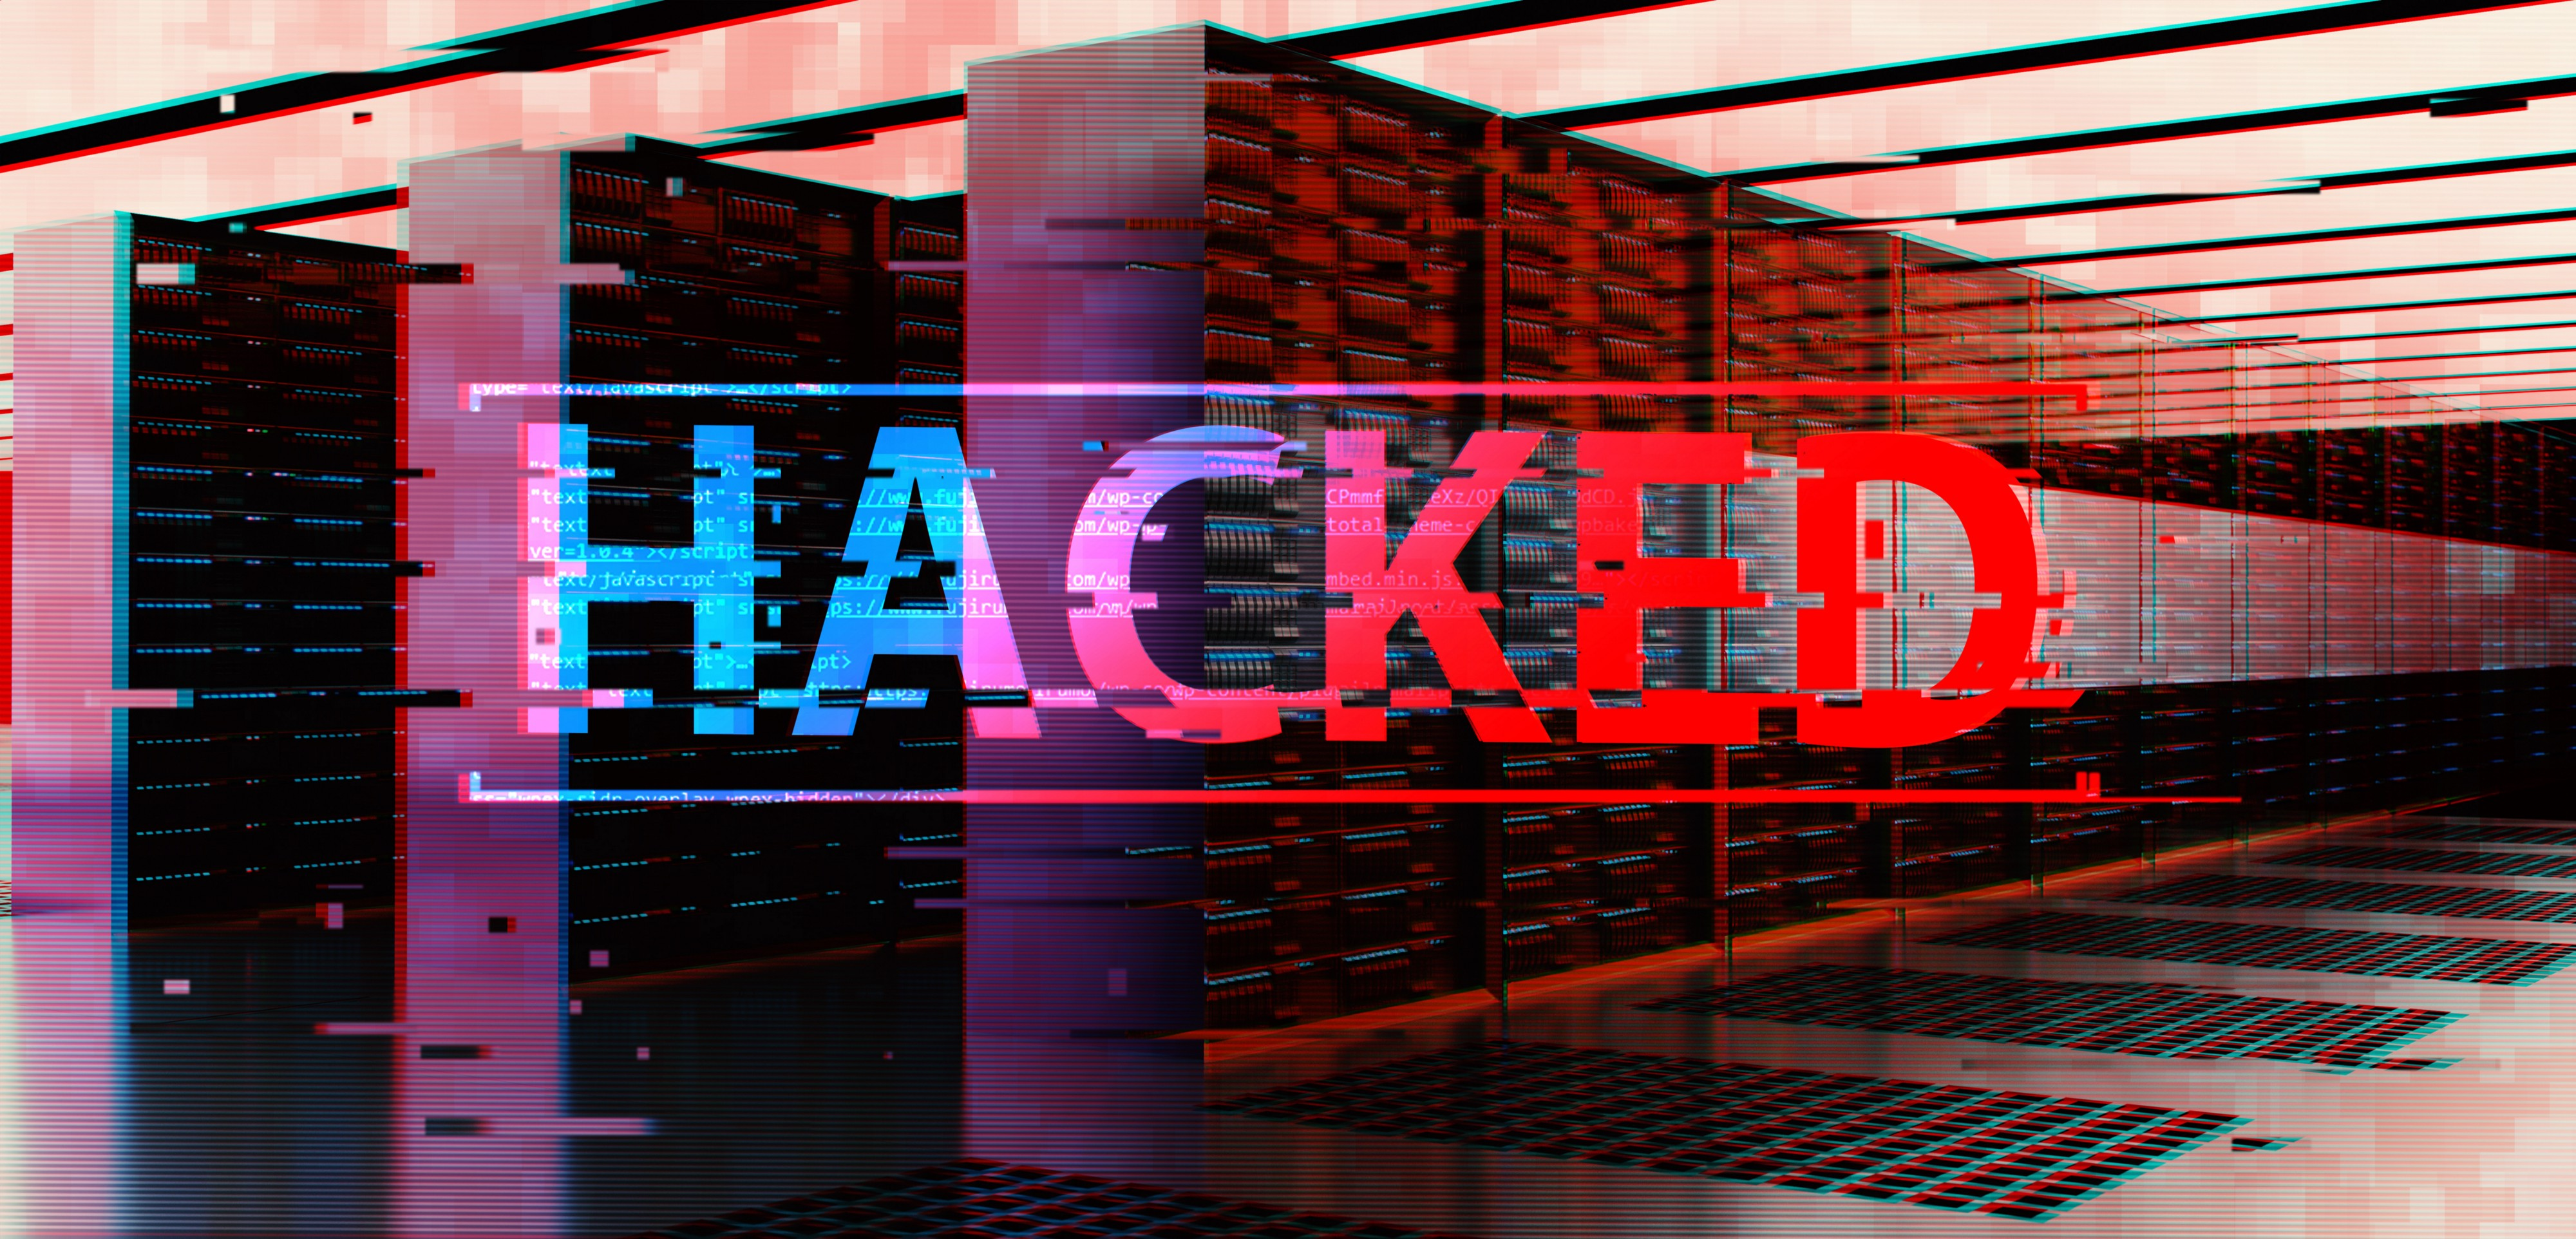 Server room with text HACKED